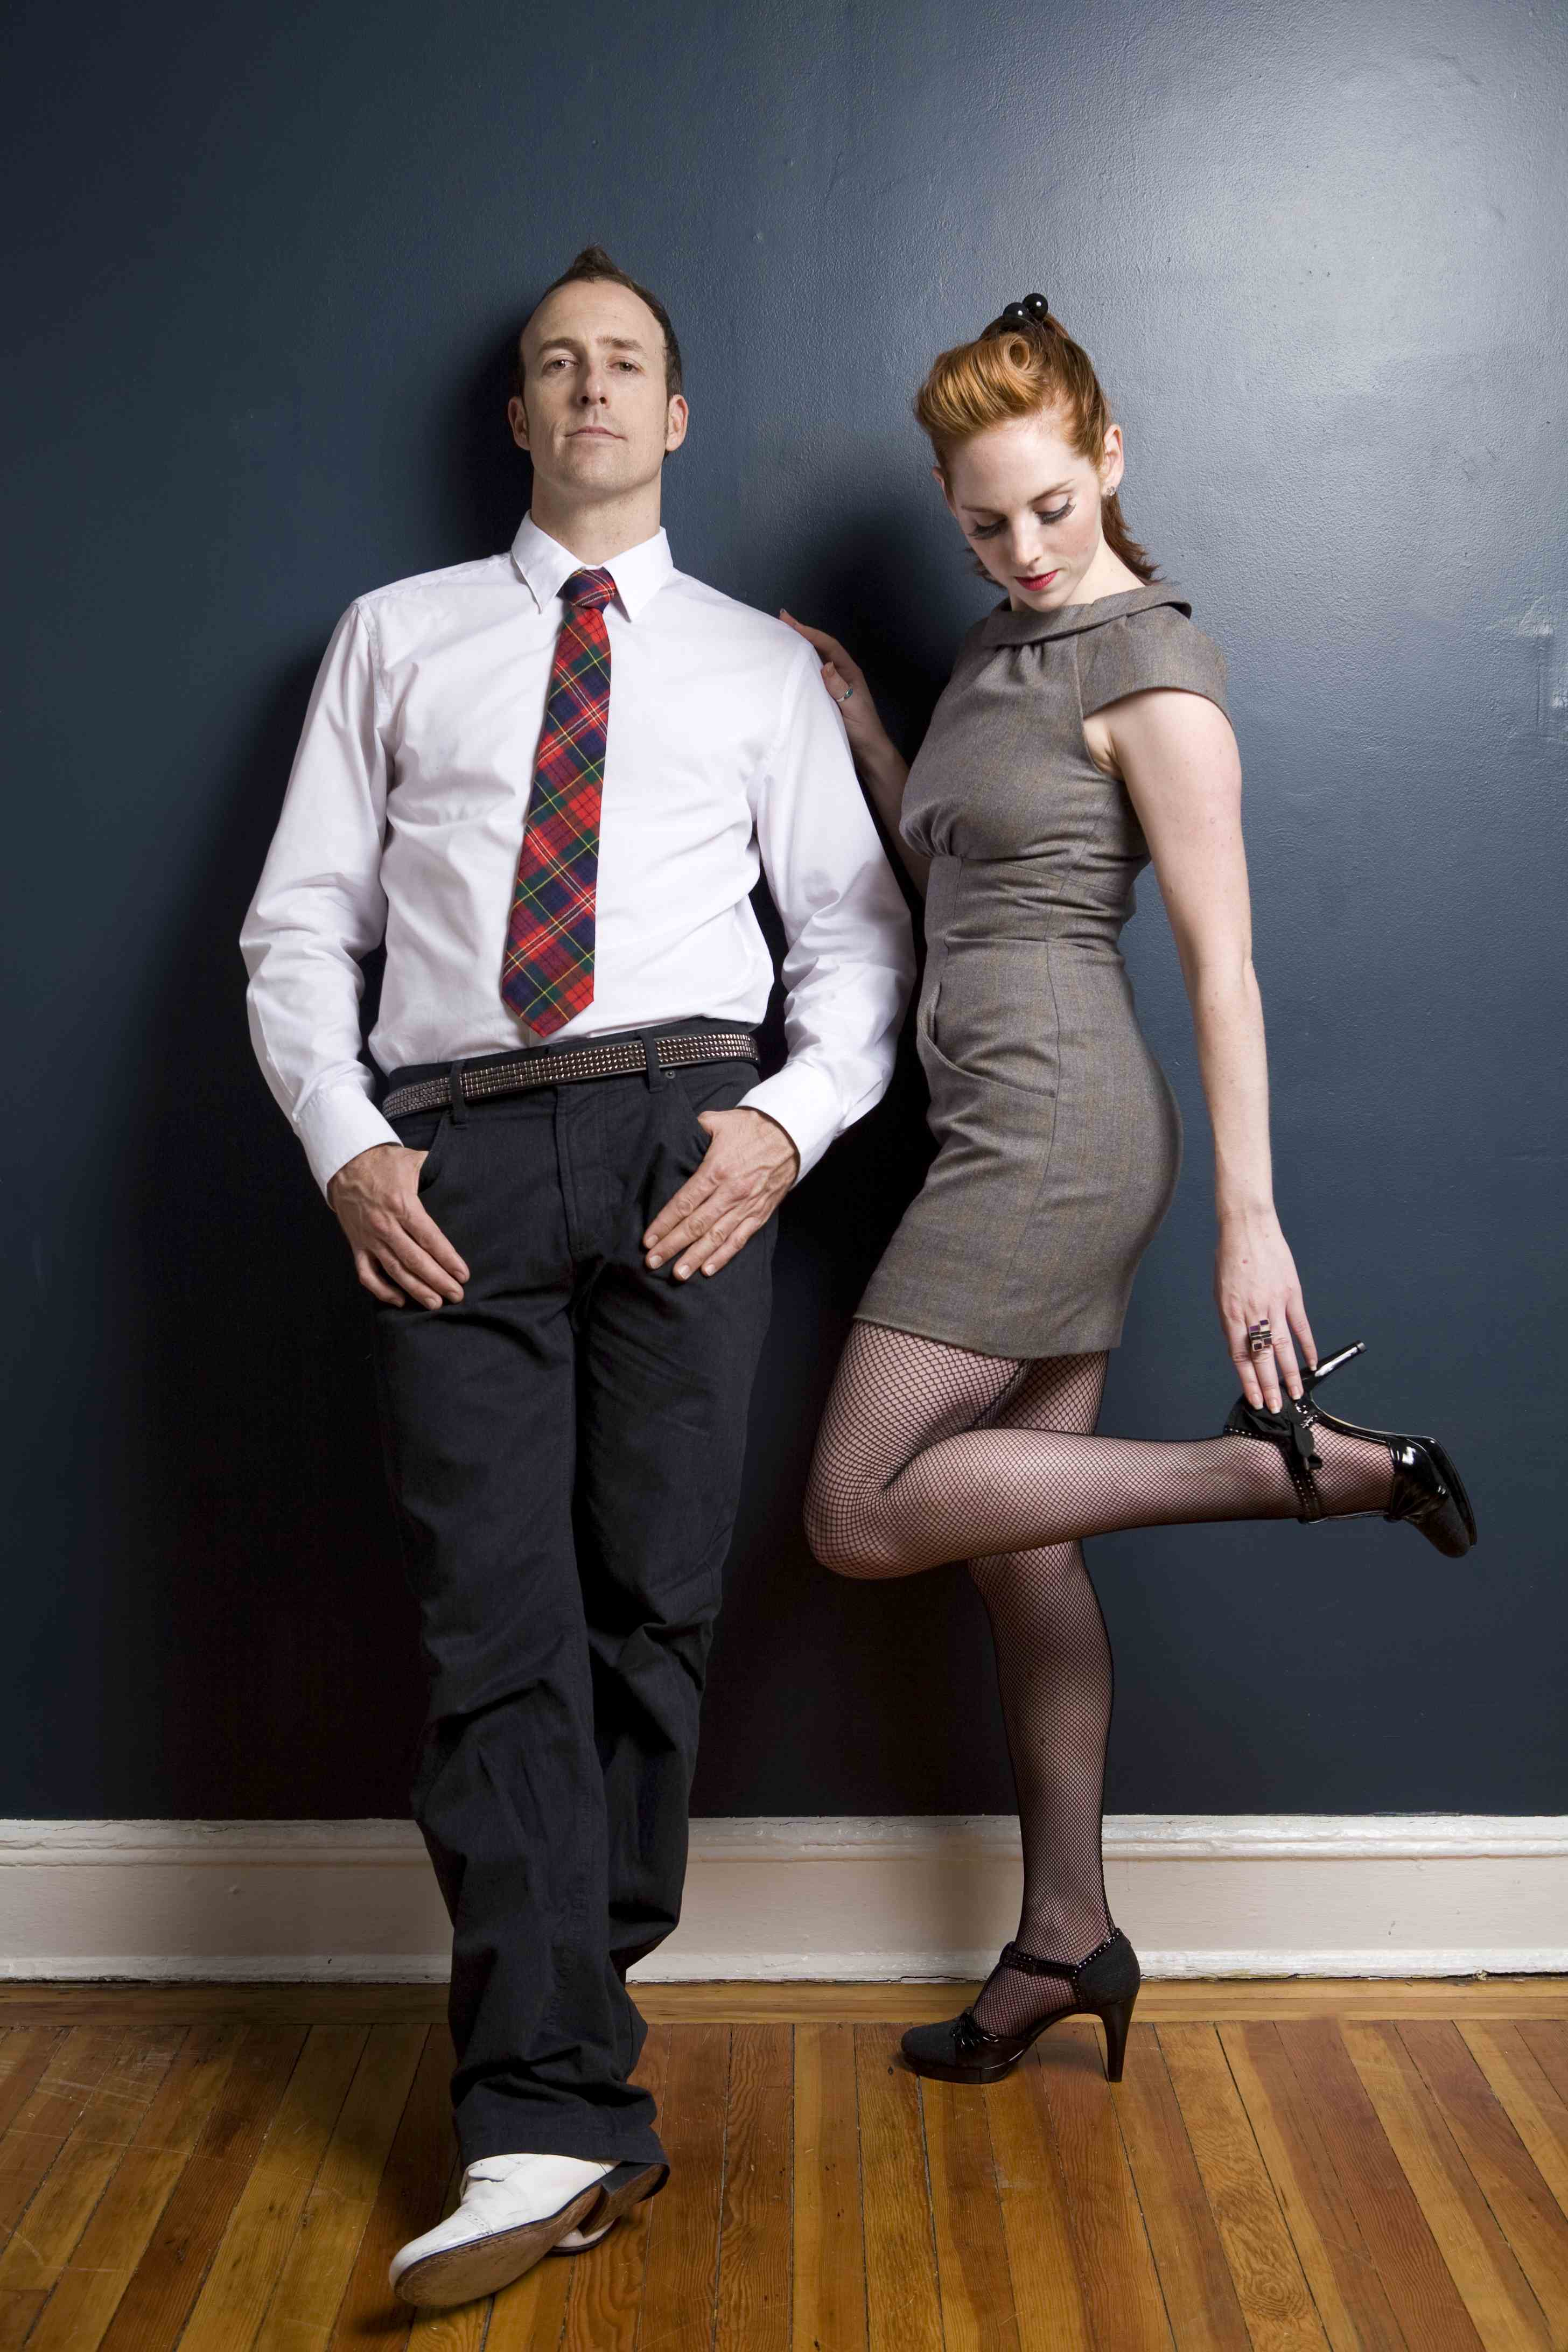 kevin_and_jo_wall_hires1